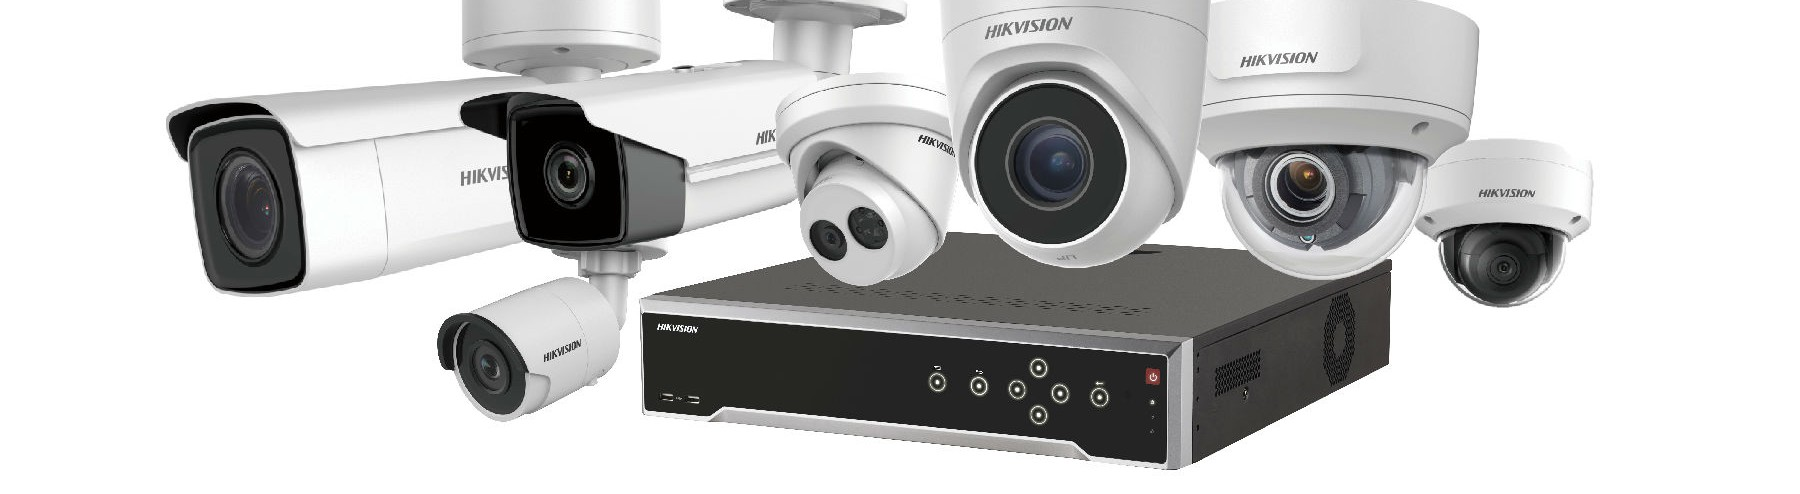 Want to buy an alarm system, ip camera or intercom